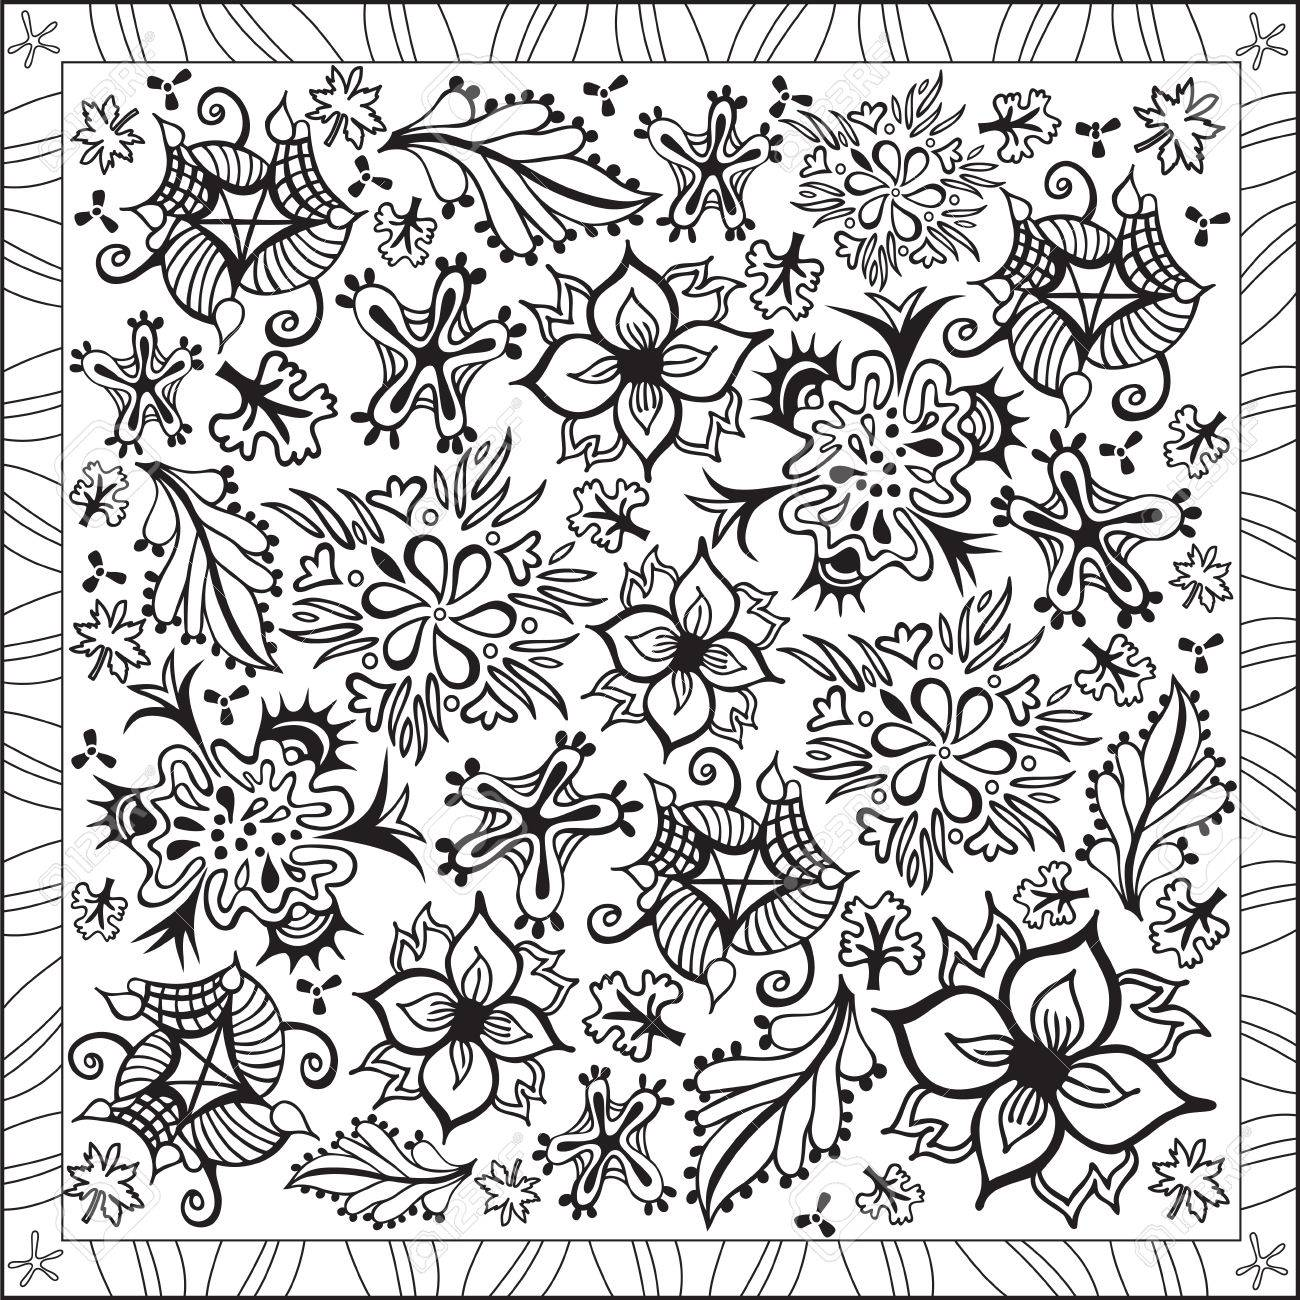 Page Coloring Book For Adults Square Format Flowers Pattern Design Illustration Stock Vector